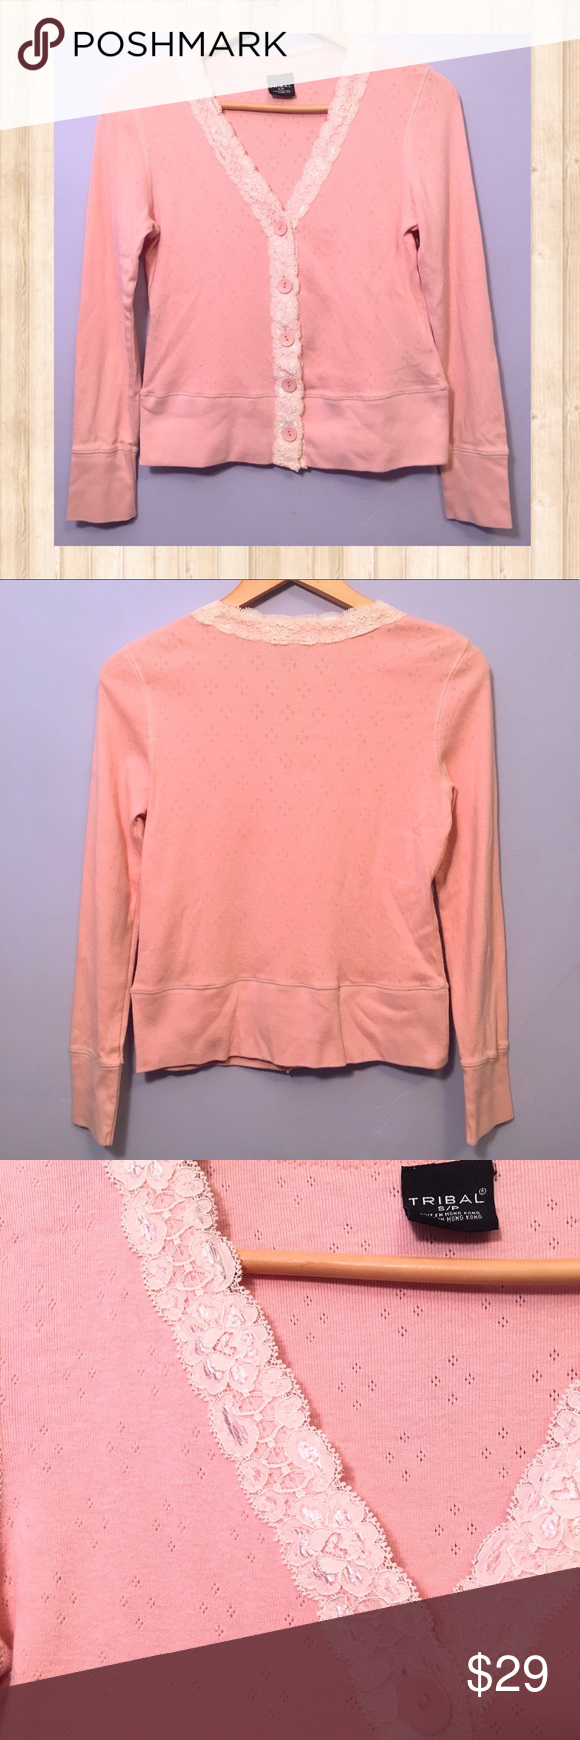 Tribal pink and white lace trim cardigan Tribal pink and white ...